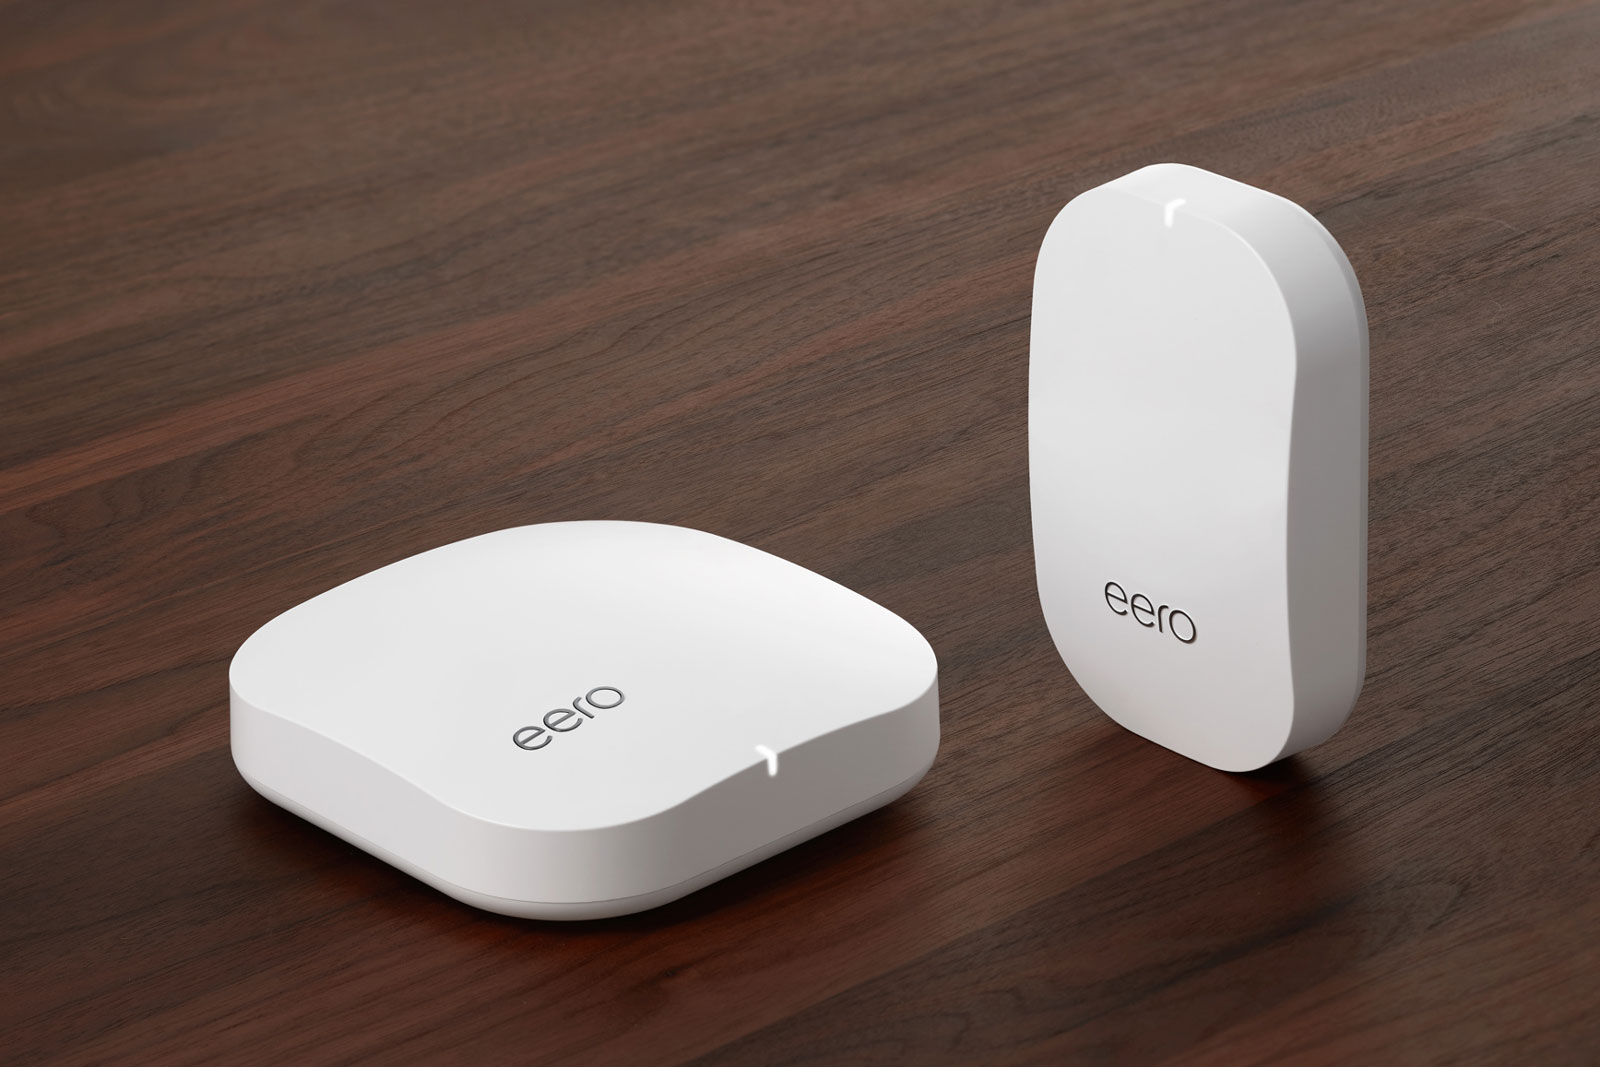 Eero Upgrades Its Mesh Wifi System With More Power